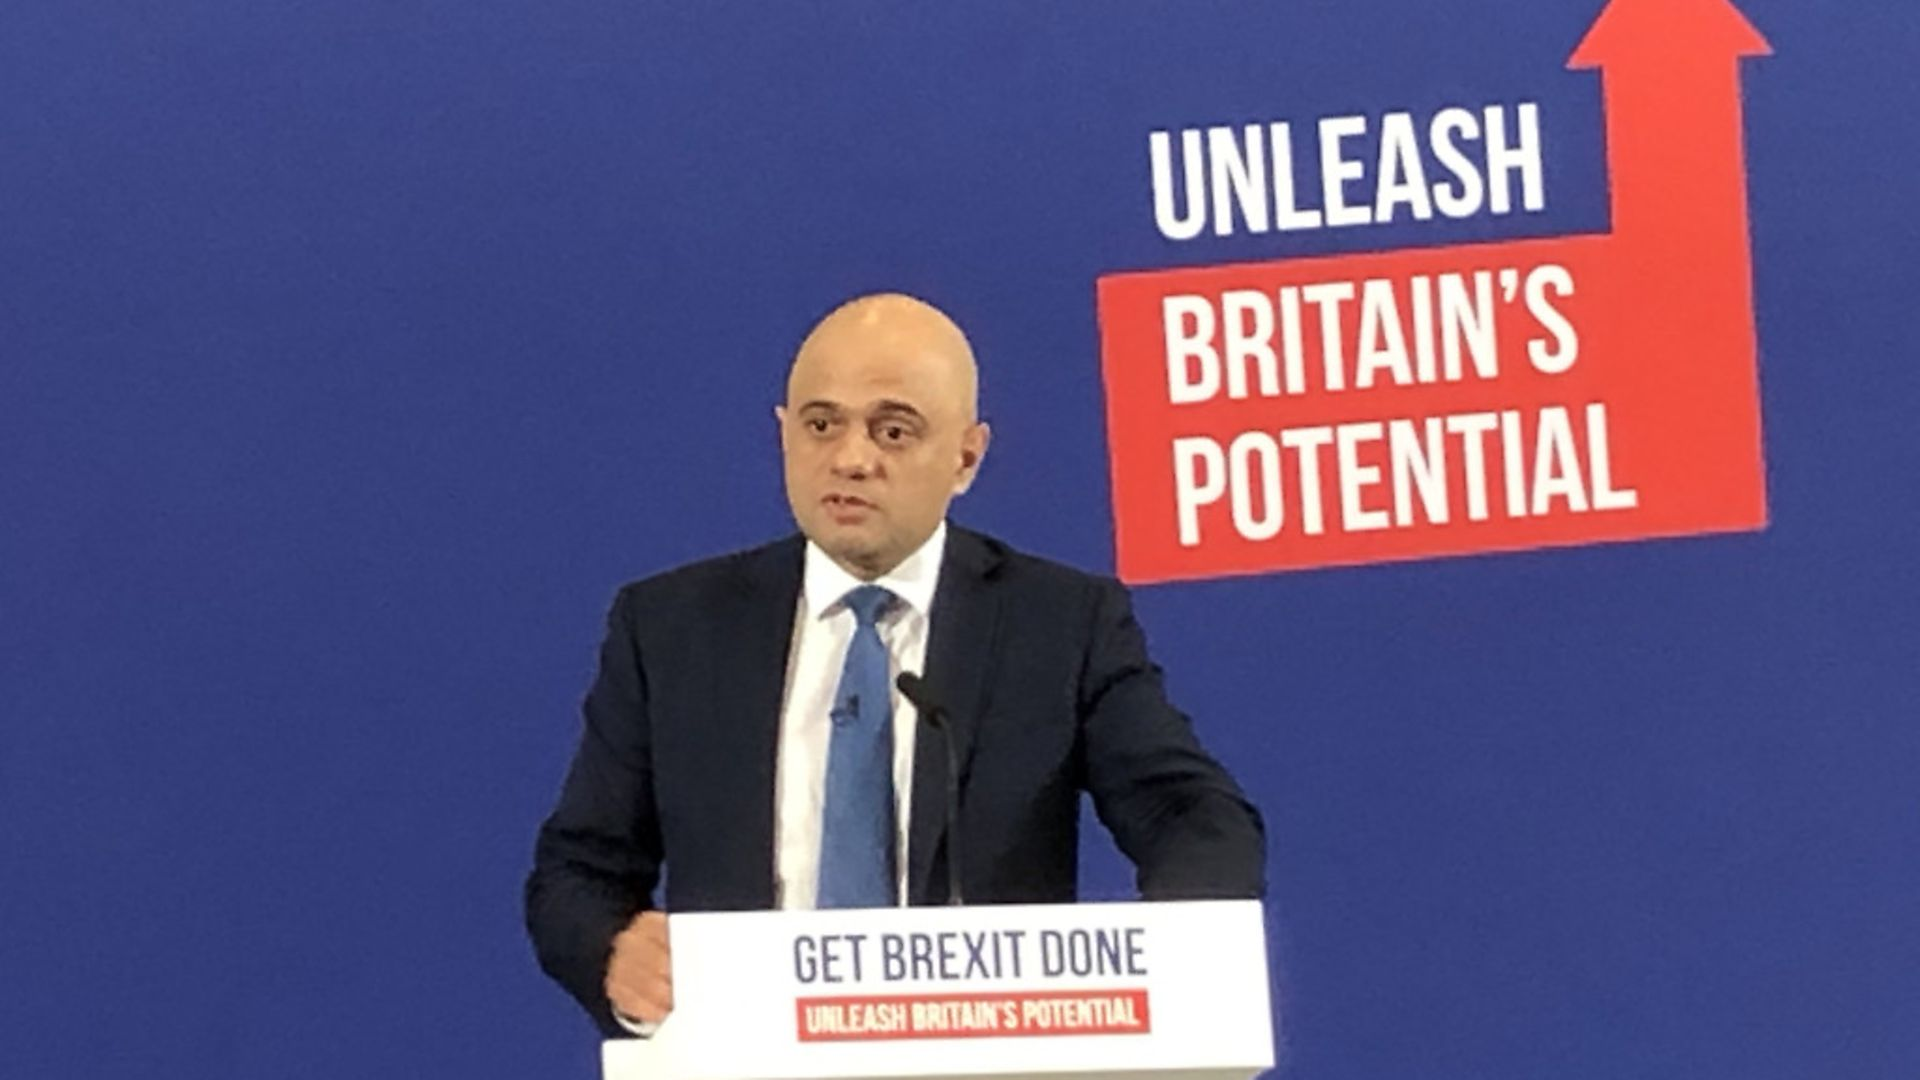 Chancellor of the Exchequer Sajid Javid talking to Conservative Party suporters on the election campaign trail. Photograph: Tom WIlkinson/PA. - Credit: PA Wire/PA Images